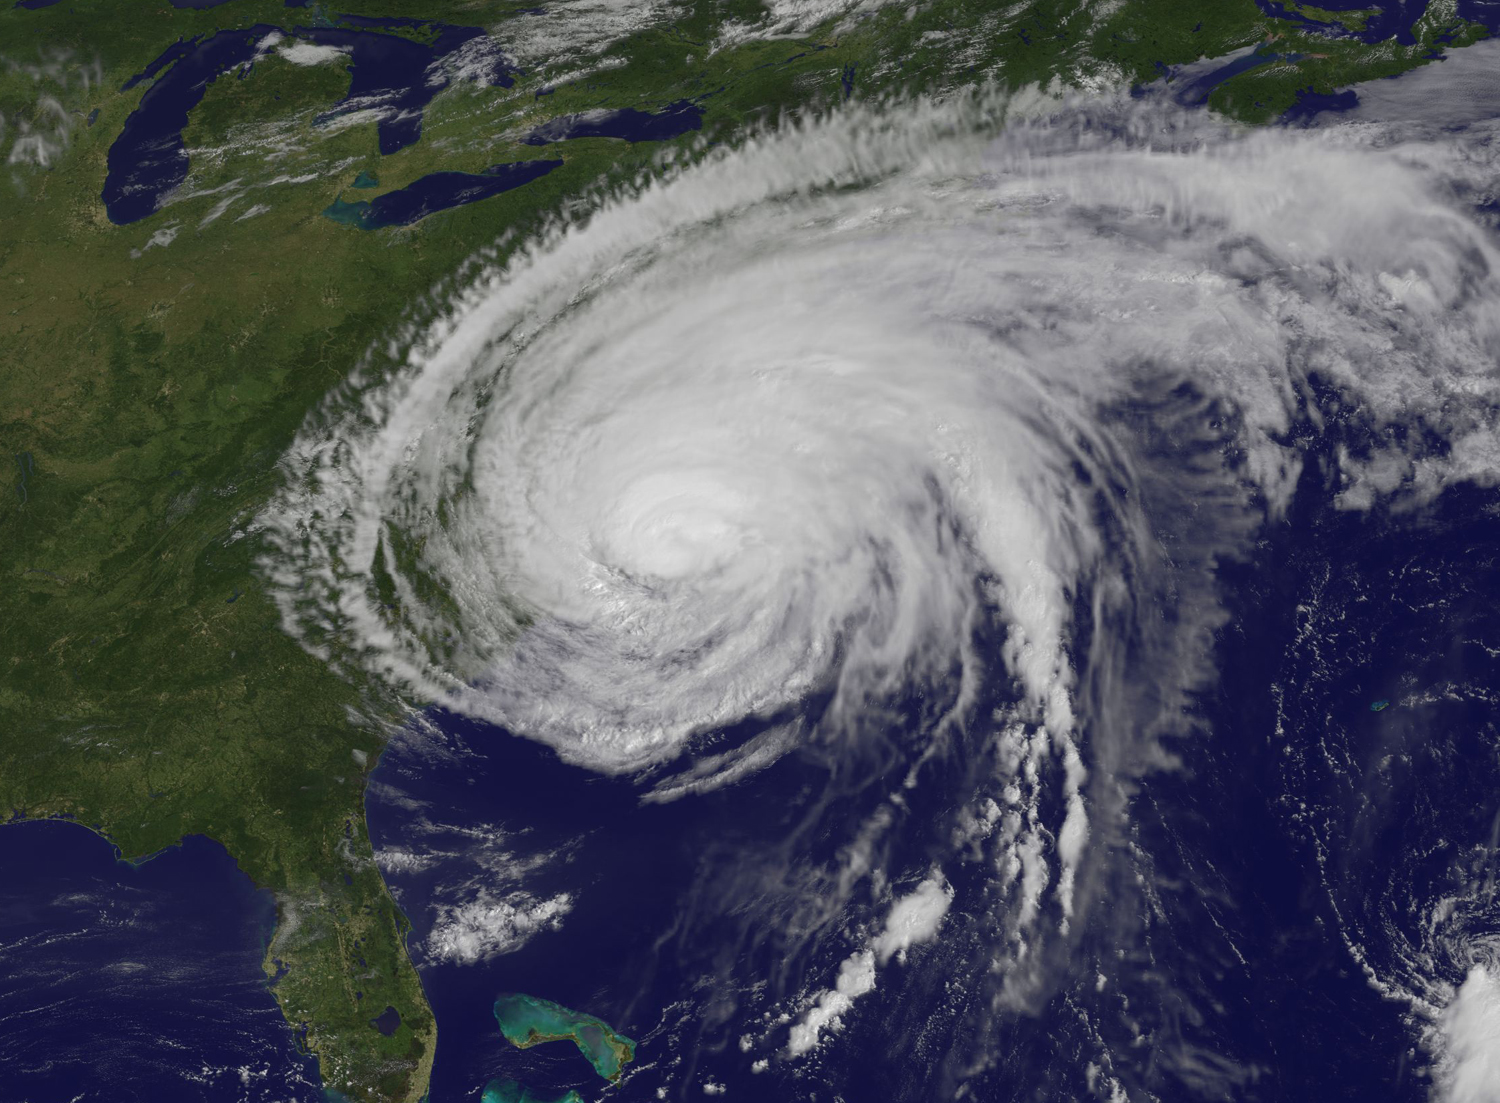 Satellite Photo Shows Hurricane Irene Battering US East Coast